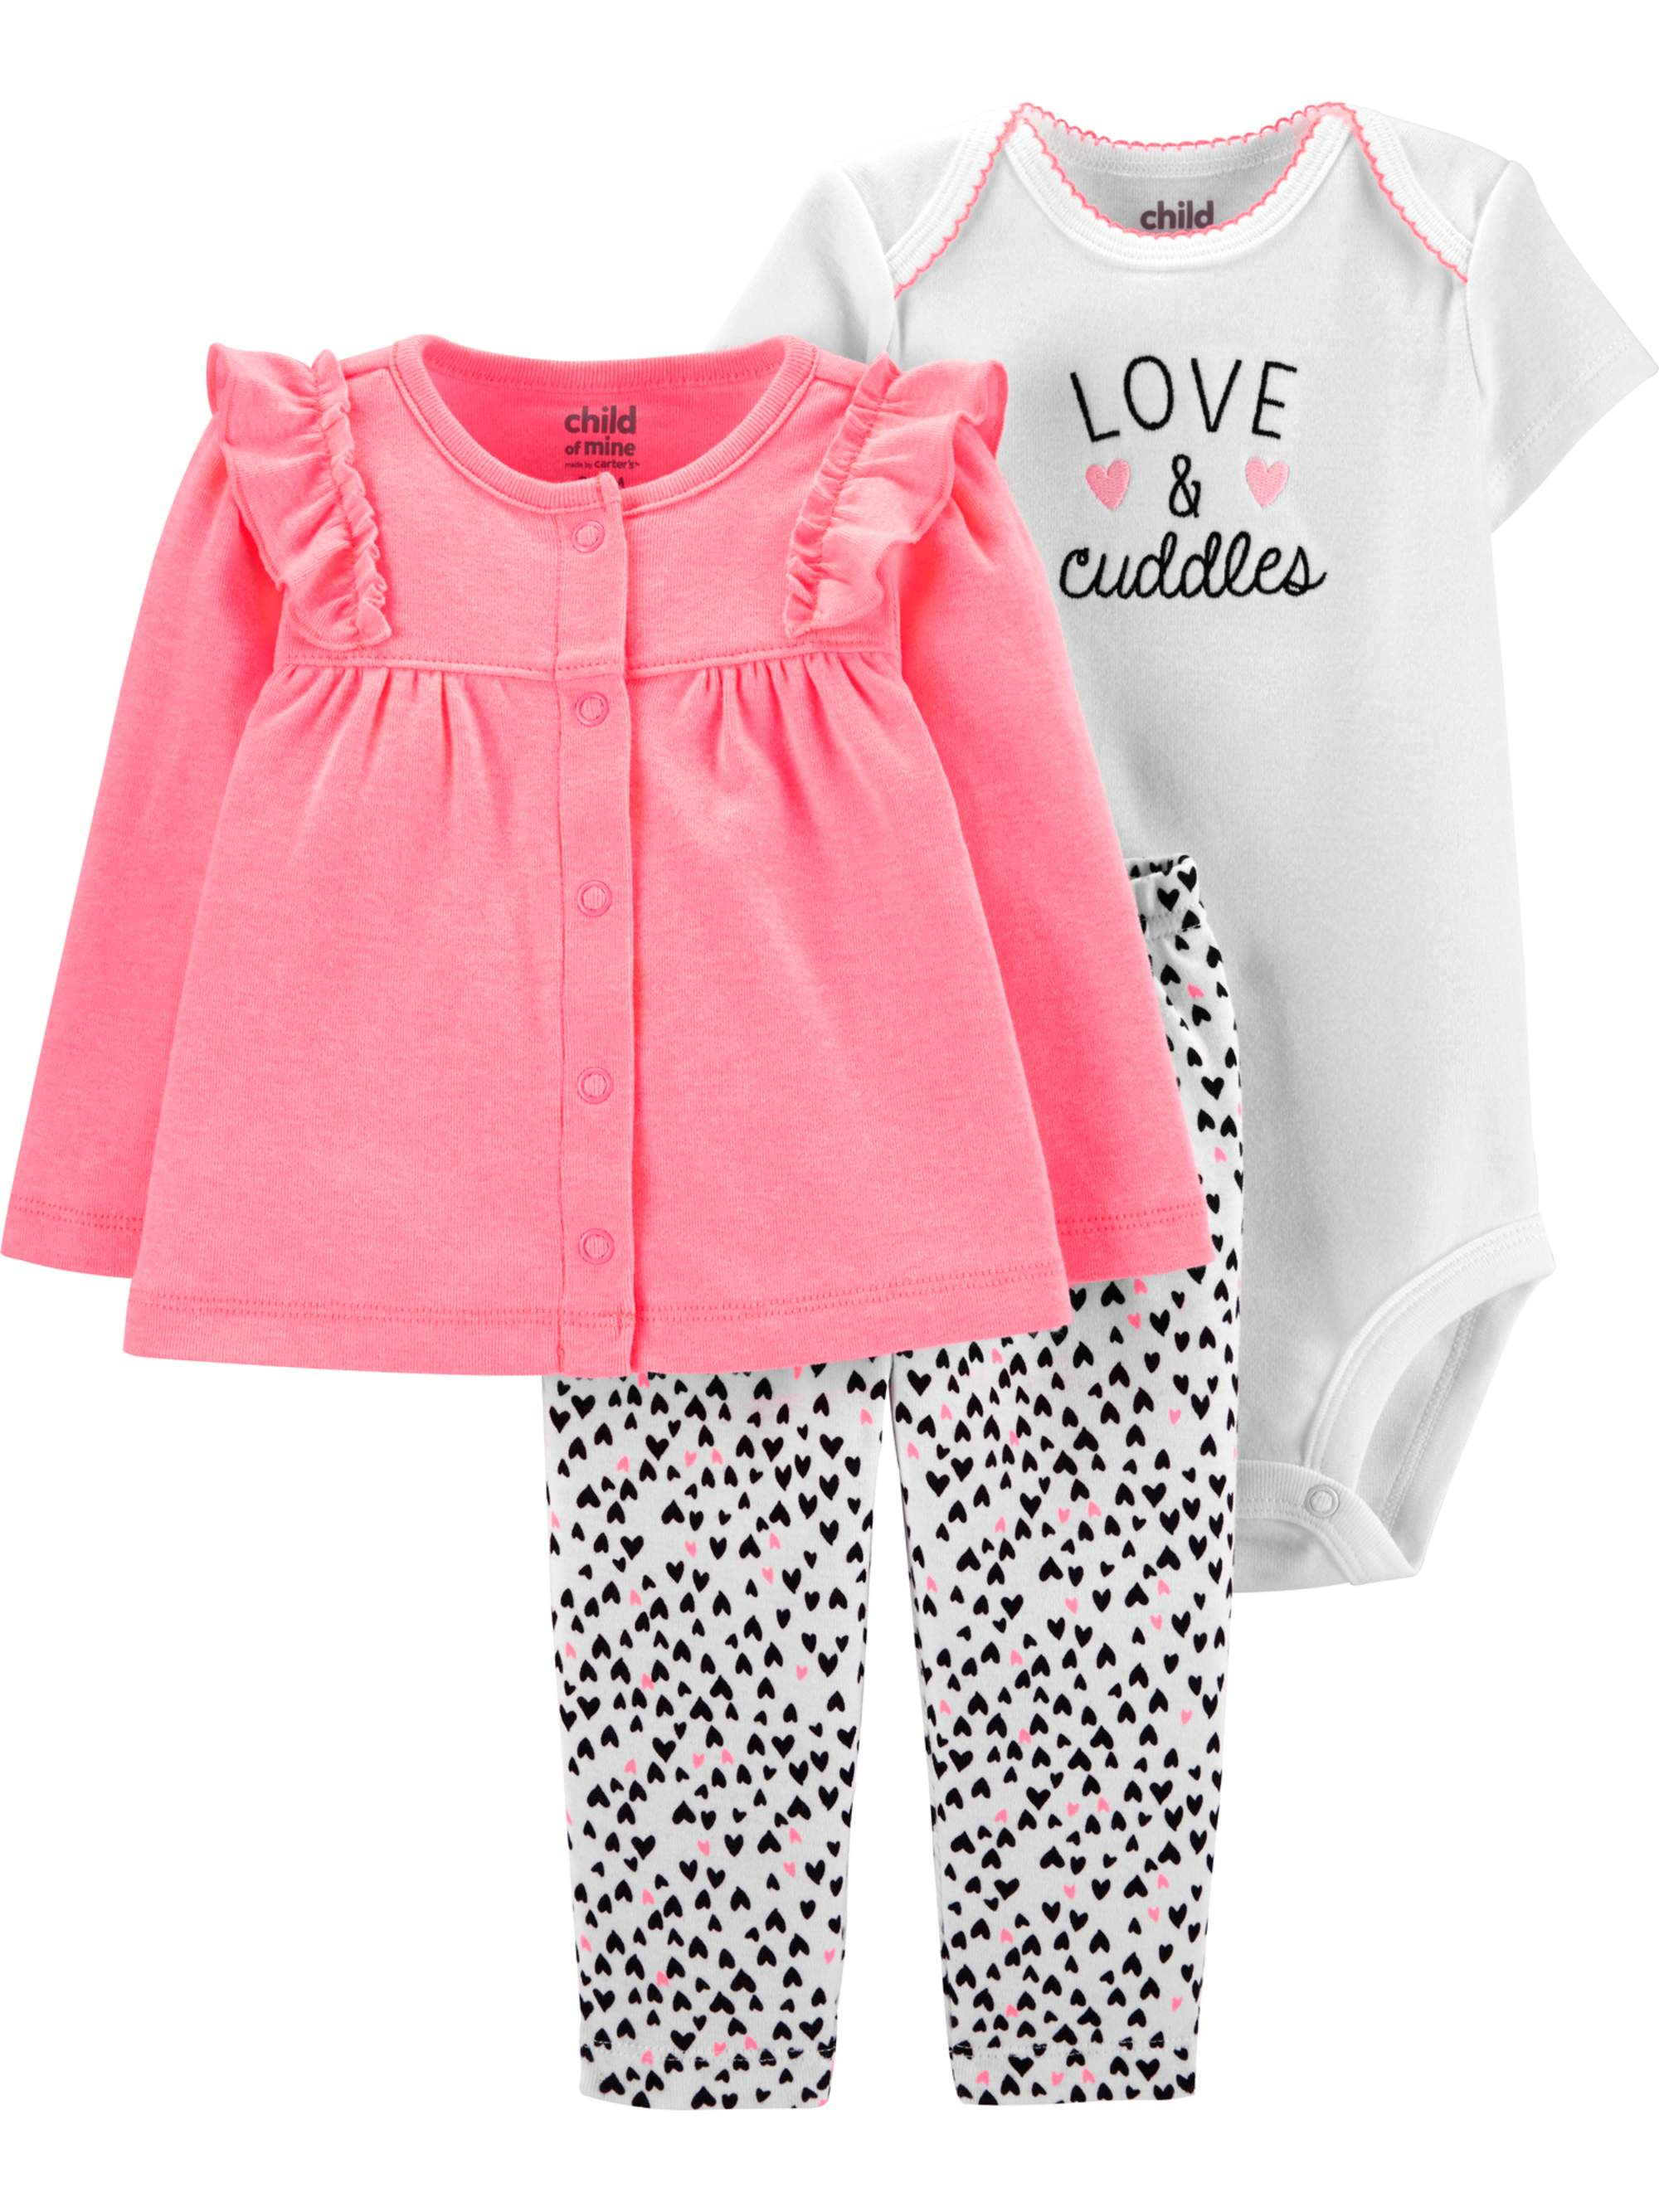 New Baby Girl 3 pcs Outfit Toddler Set Top+Pants+Headband Girls Baby LOCAL OZ